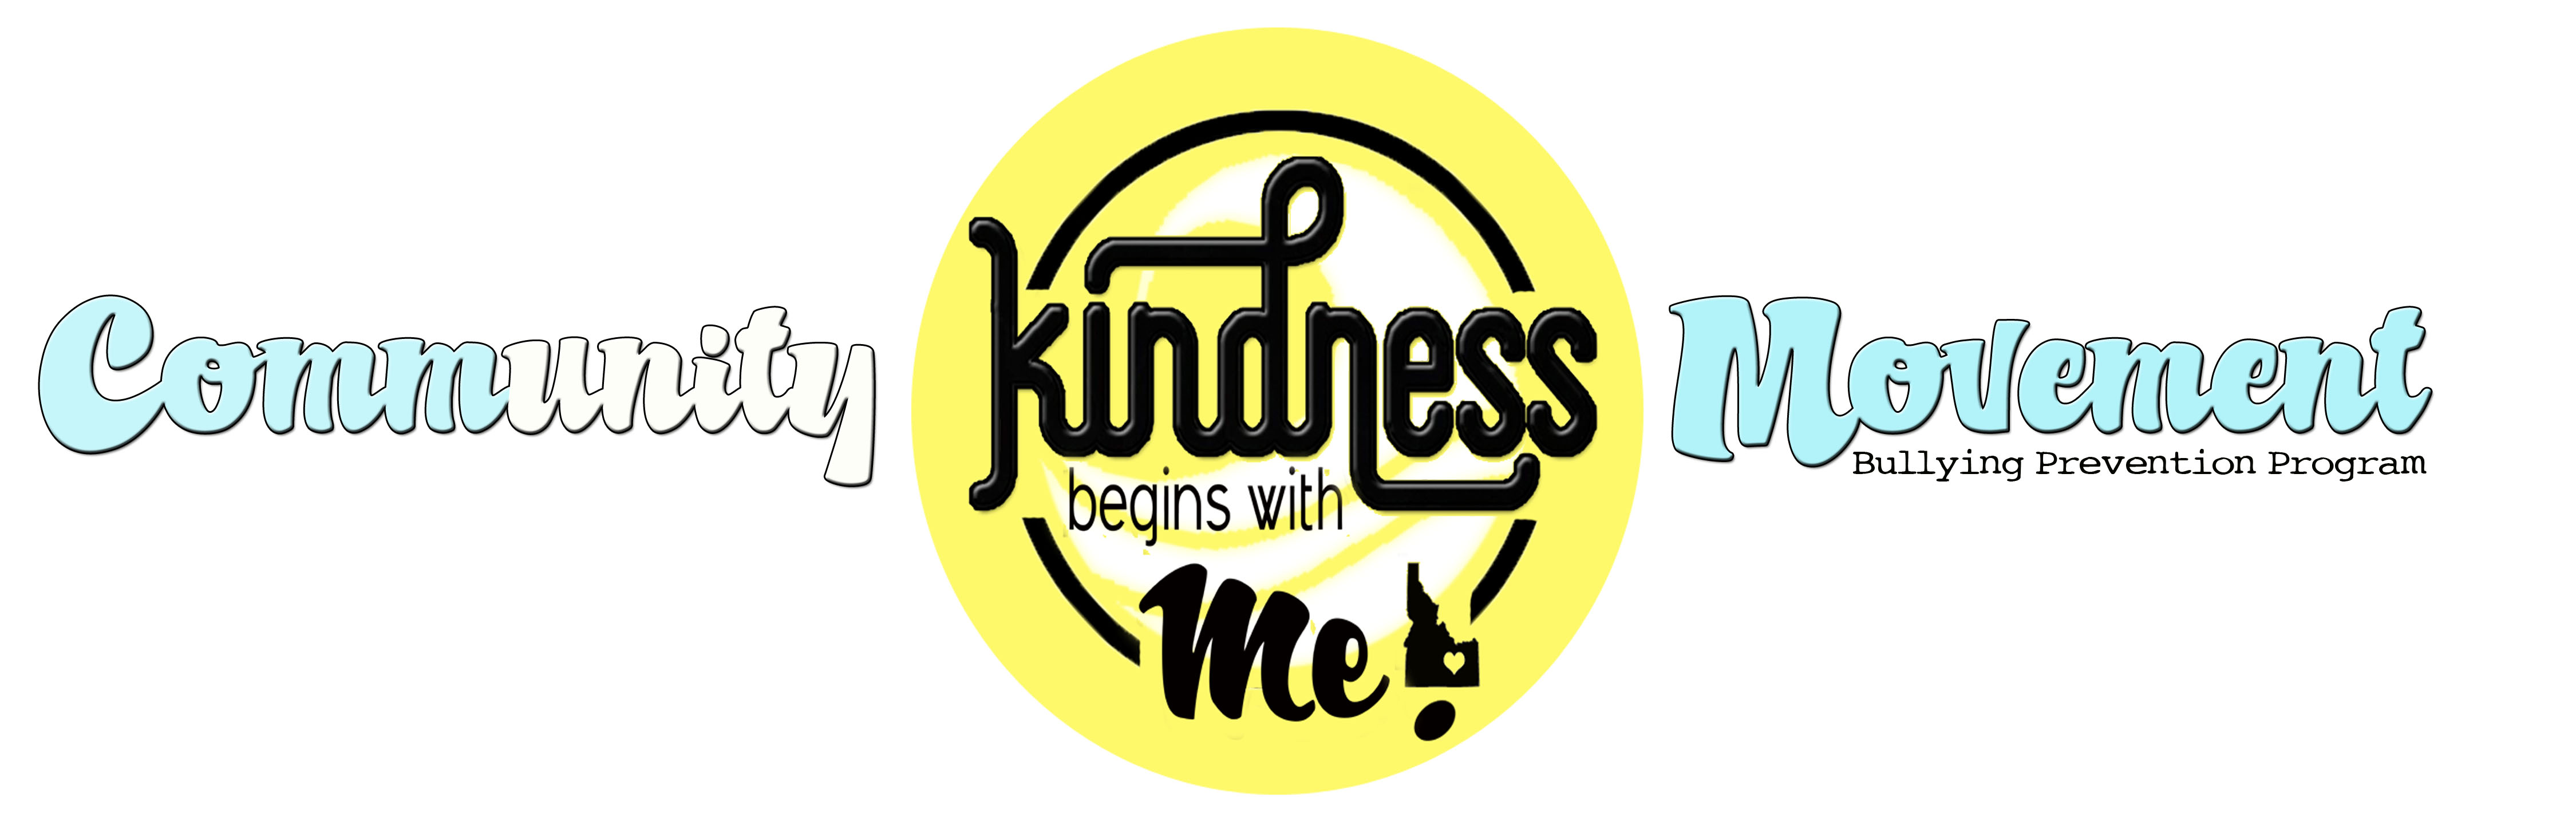 Community Kindness Movement